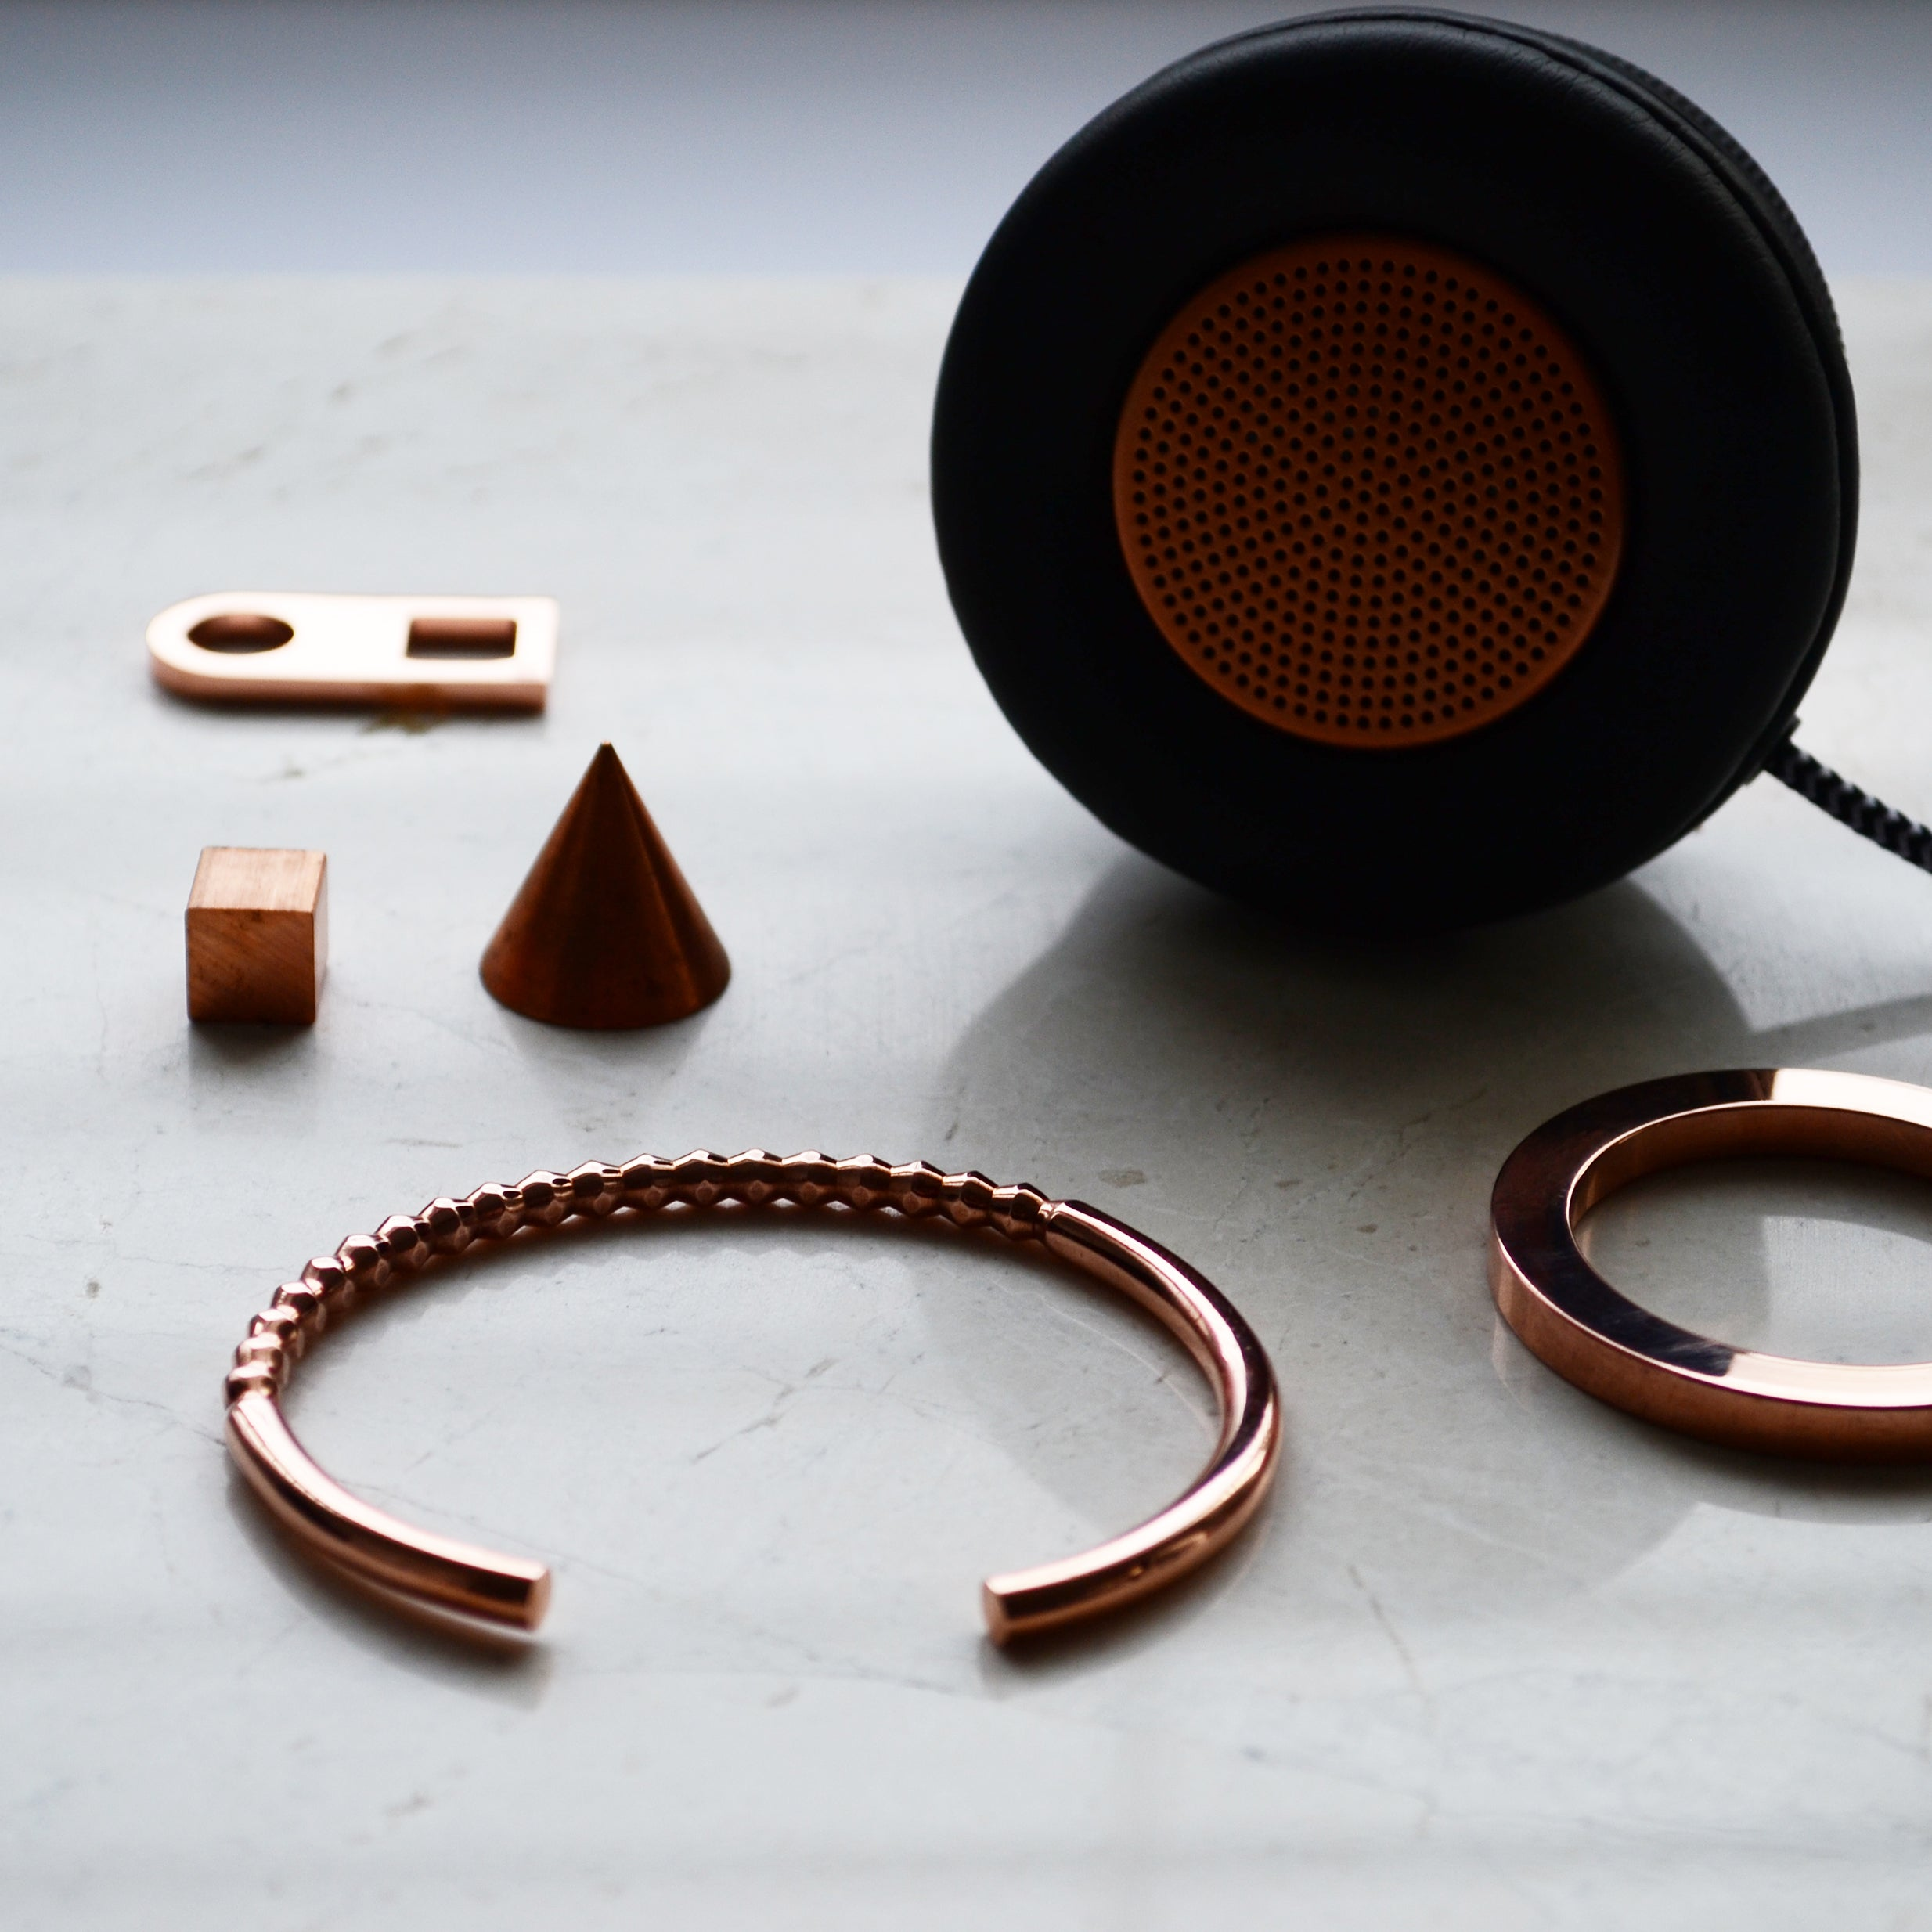 Copper bracelet for men | Alice Made This